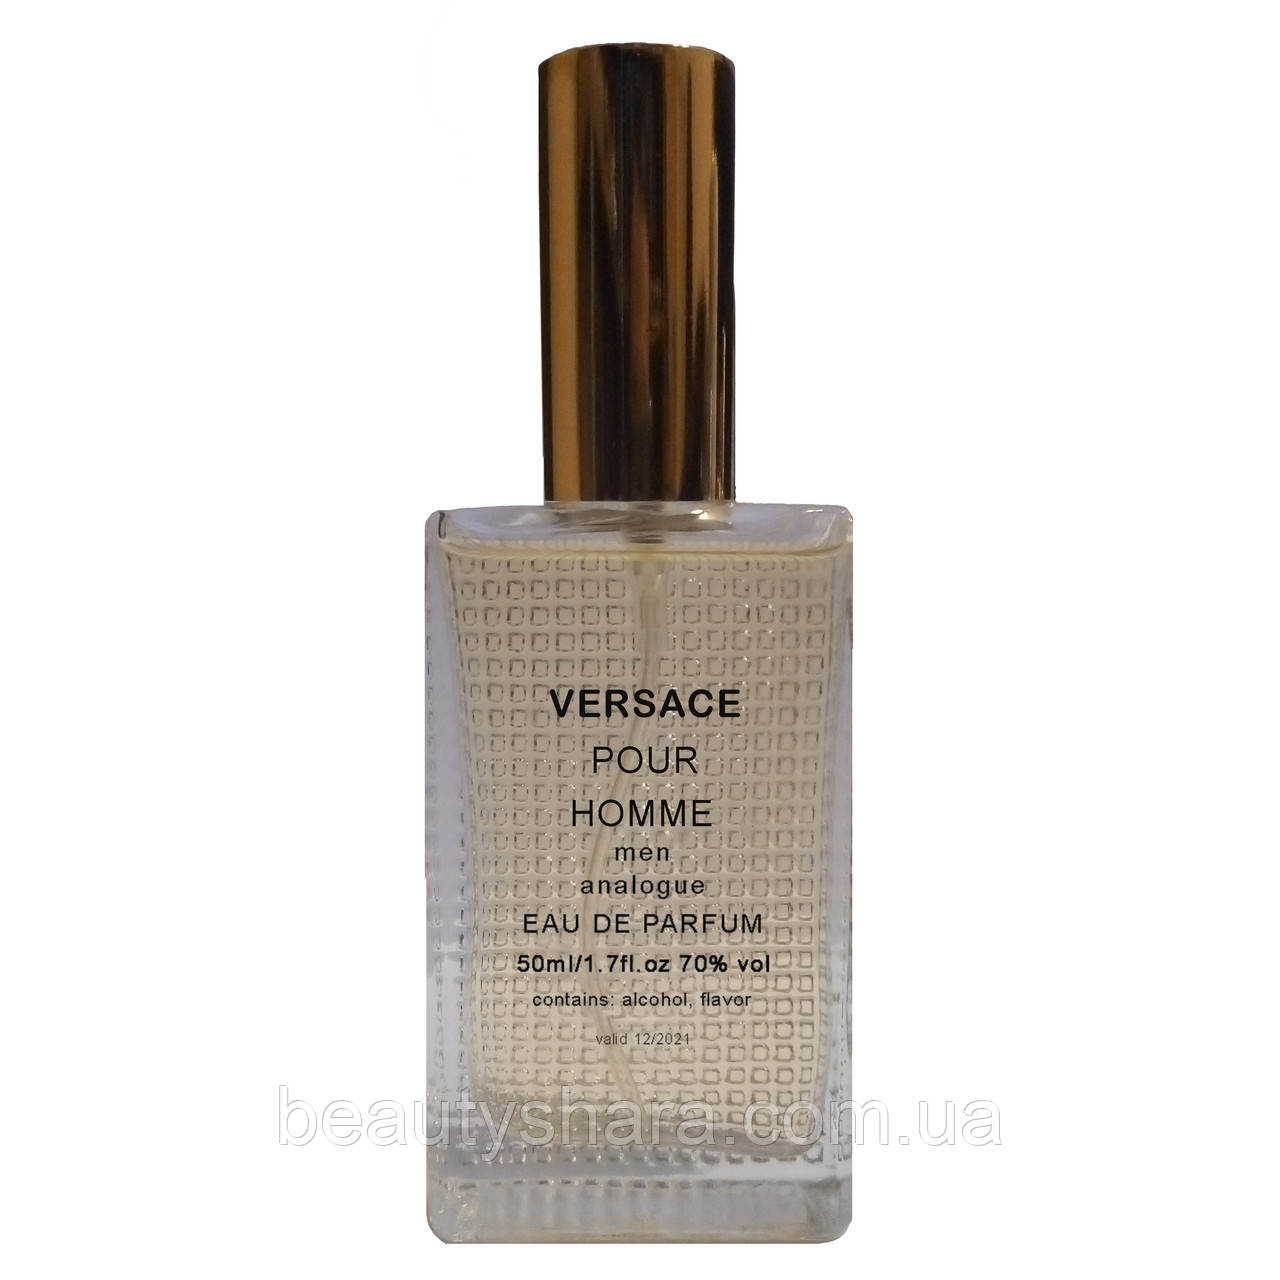 Versace Pour Homme 50ml analog